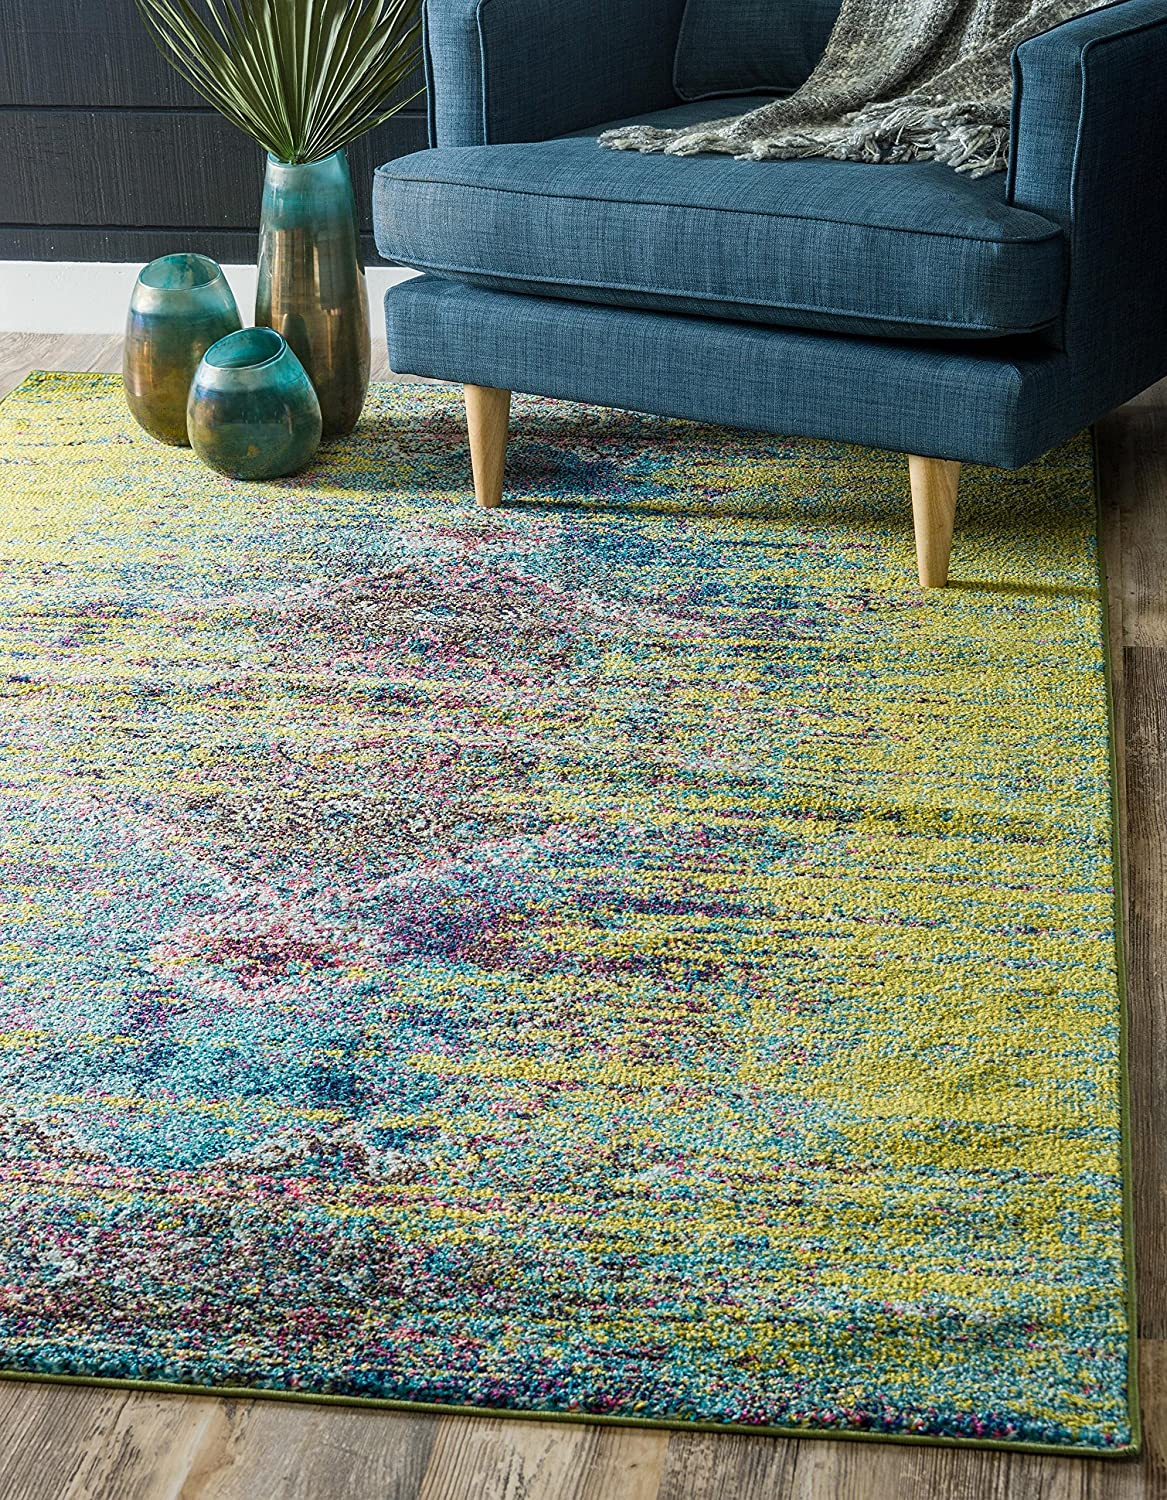 Unique Great interest Loom 3140008 Traditional Over-Dyed Rug Vintage Challenge the lowest price of Japan ☆ x 5 Area